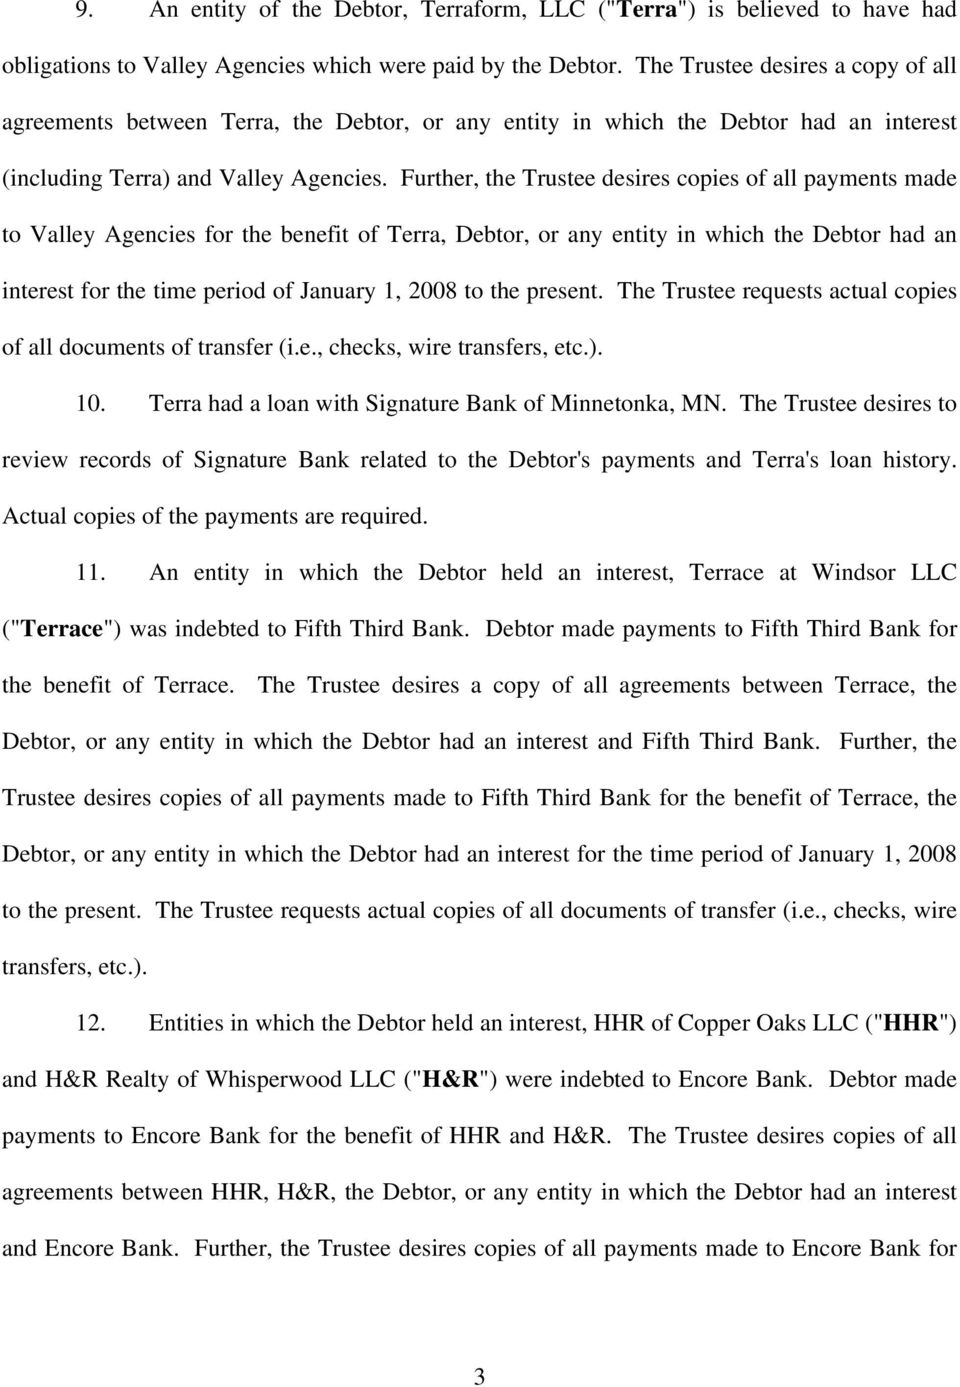 Further, the Trustee desires copies of all payments made to Valley Agencies for the benefit of Terra, Debtor, or any entity in which the Debtor had an interest for the time period of January 1, 2008